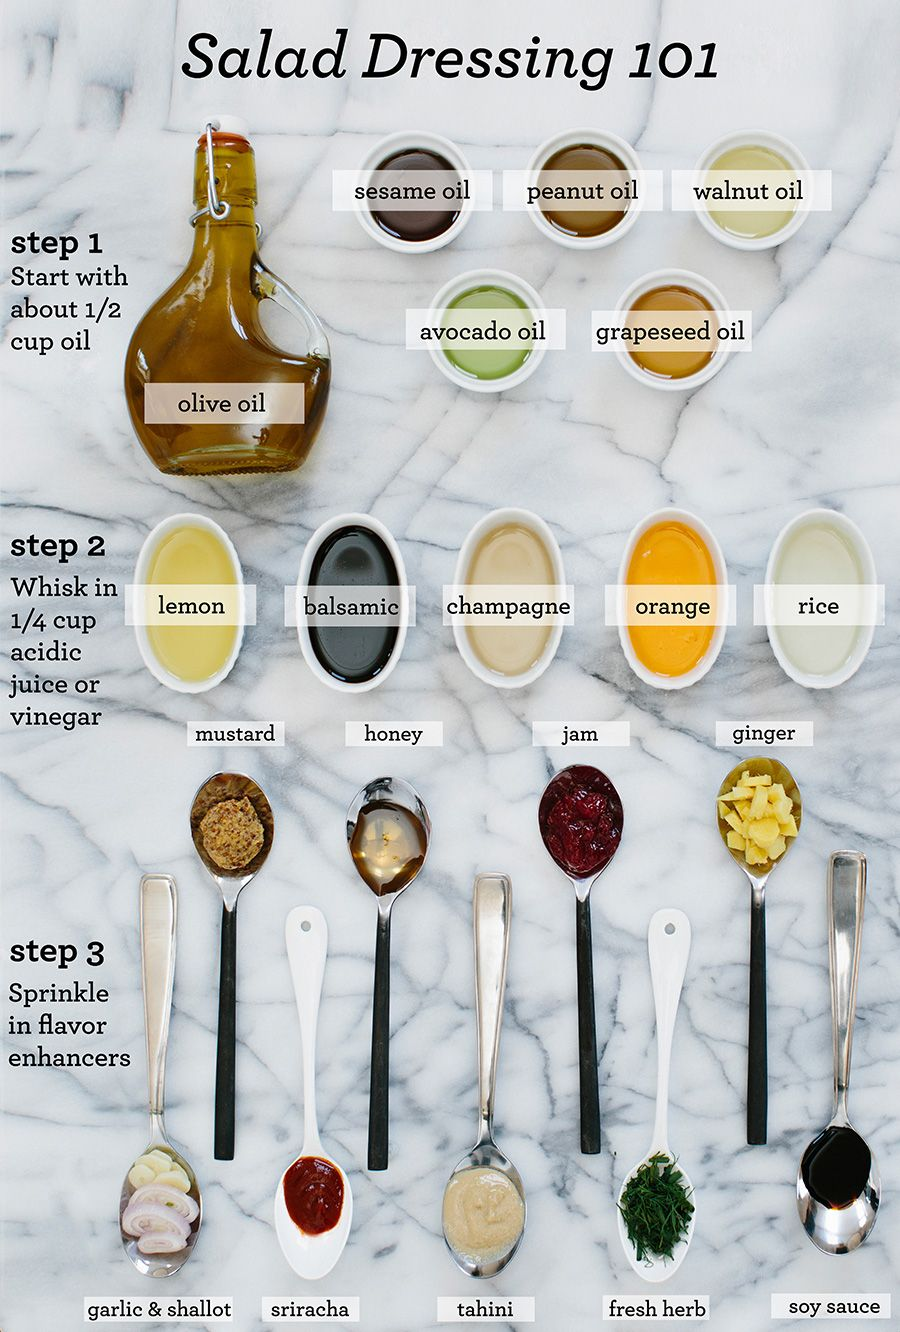 Salad Dressing 101 | Earthbound Farm Organic, easy to follow!